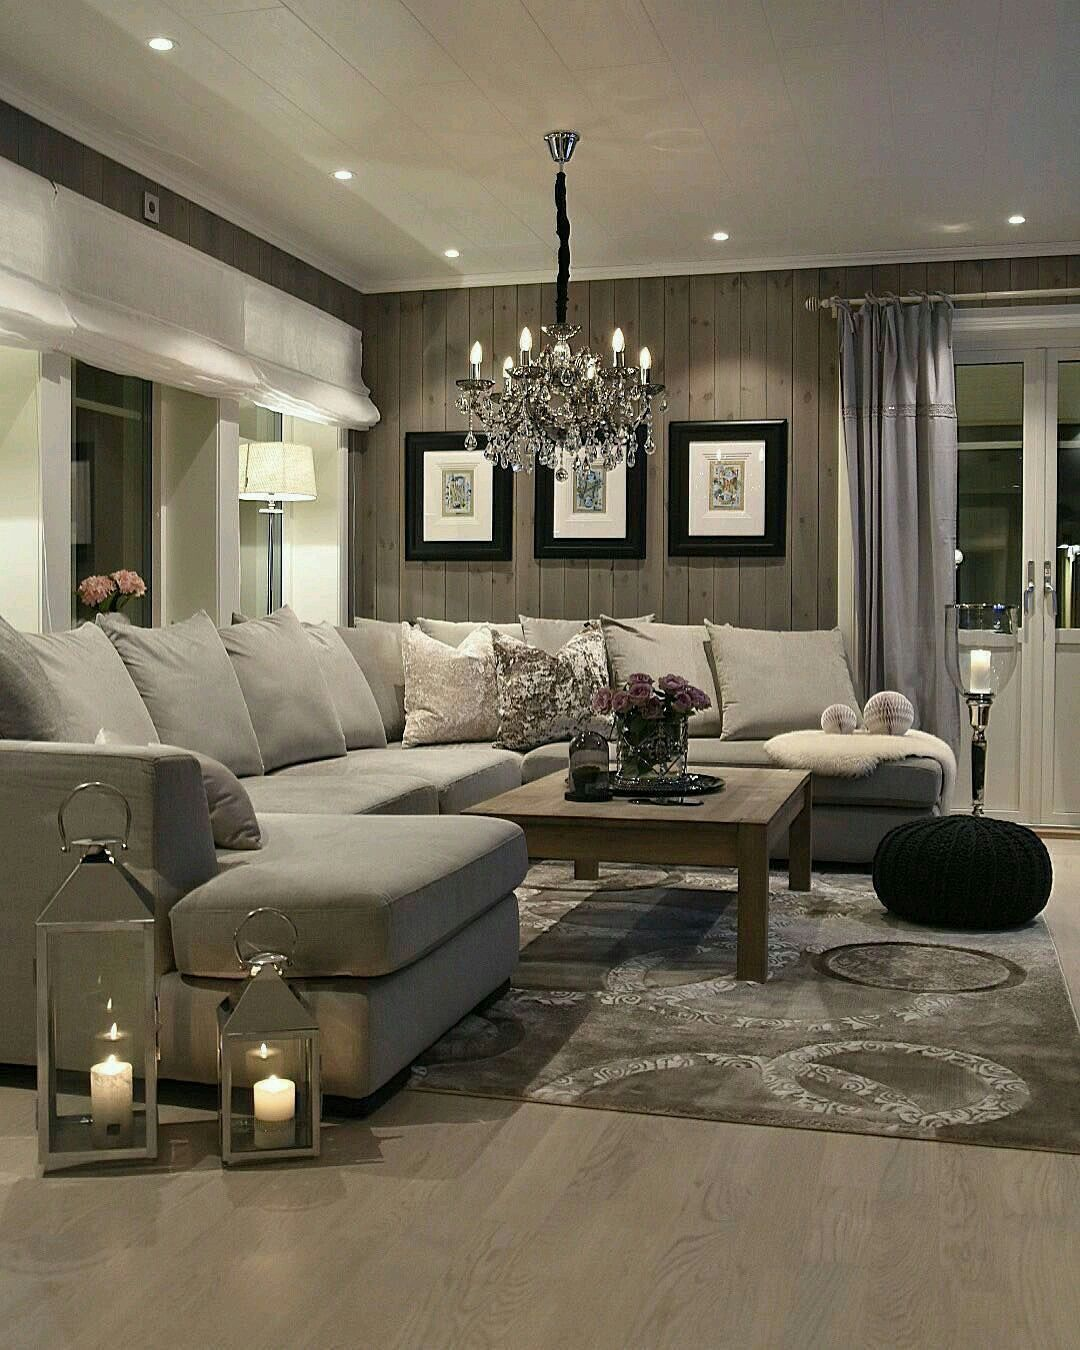 best living room decorating ideas  designs also interior design images in rh pinterest